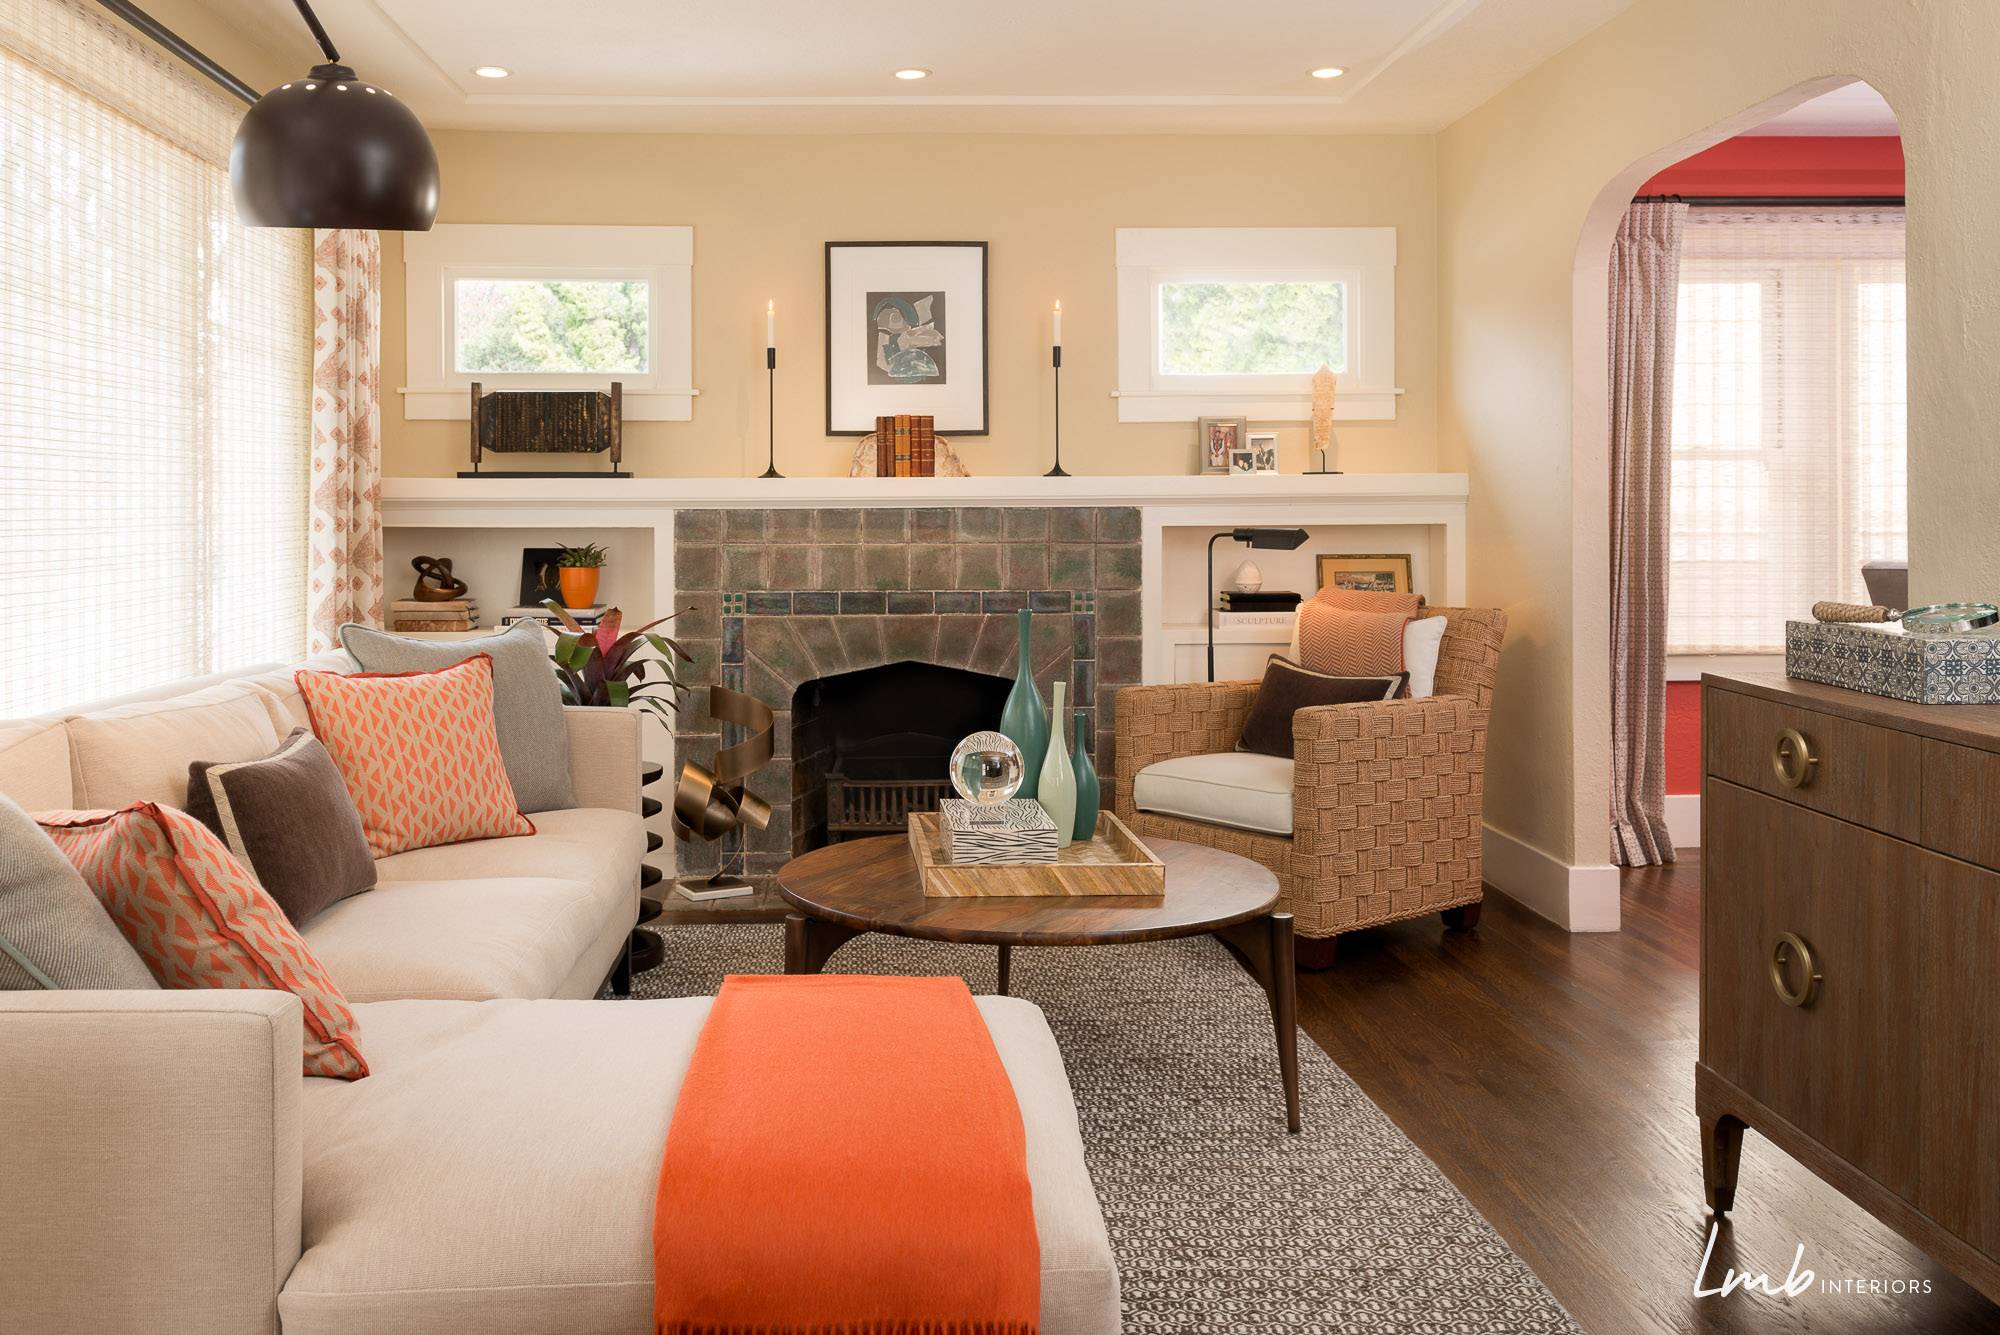 bungalow living room from drab to fab martin bovard interiors 10629